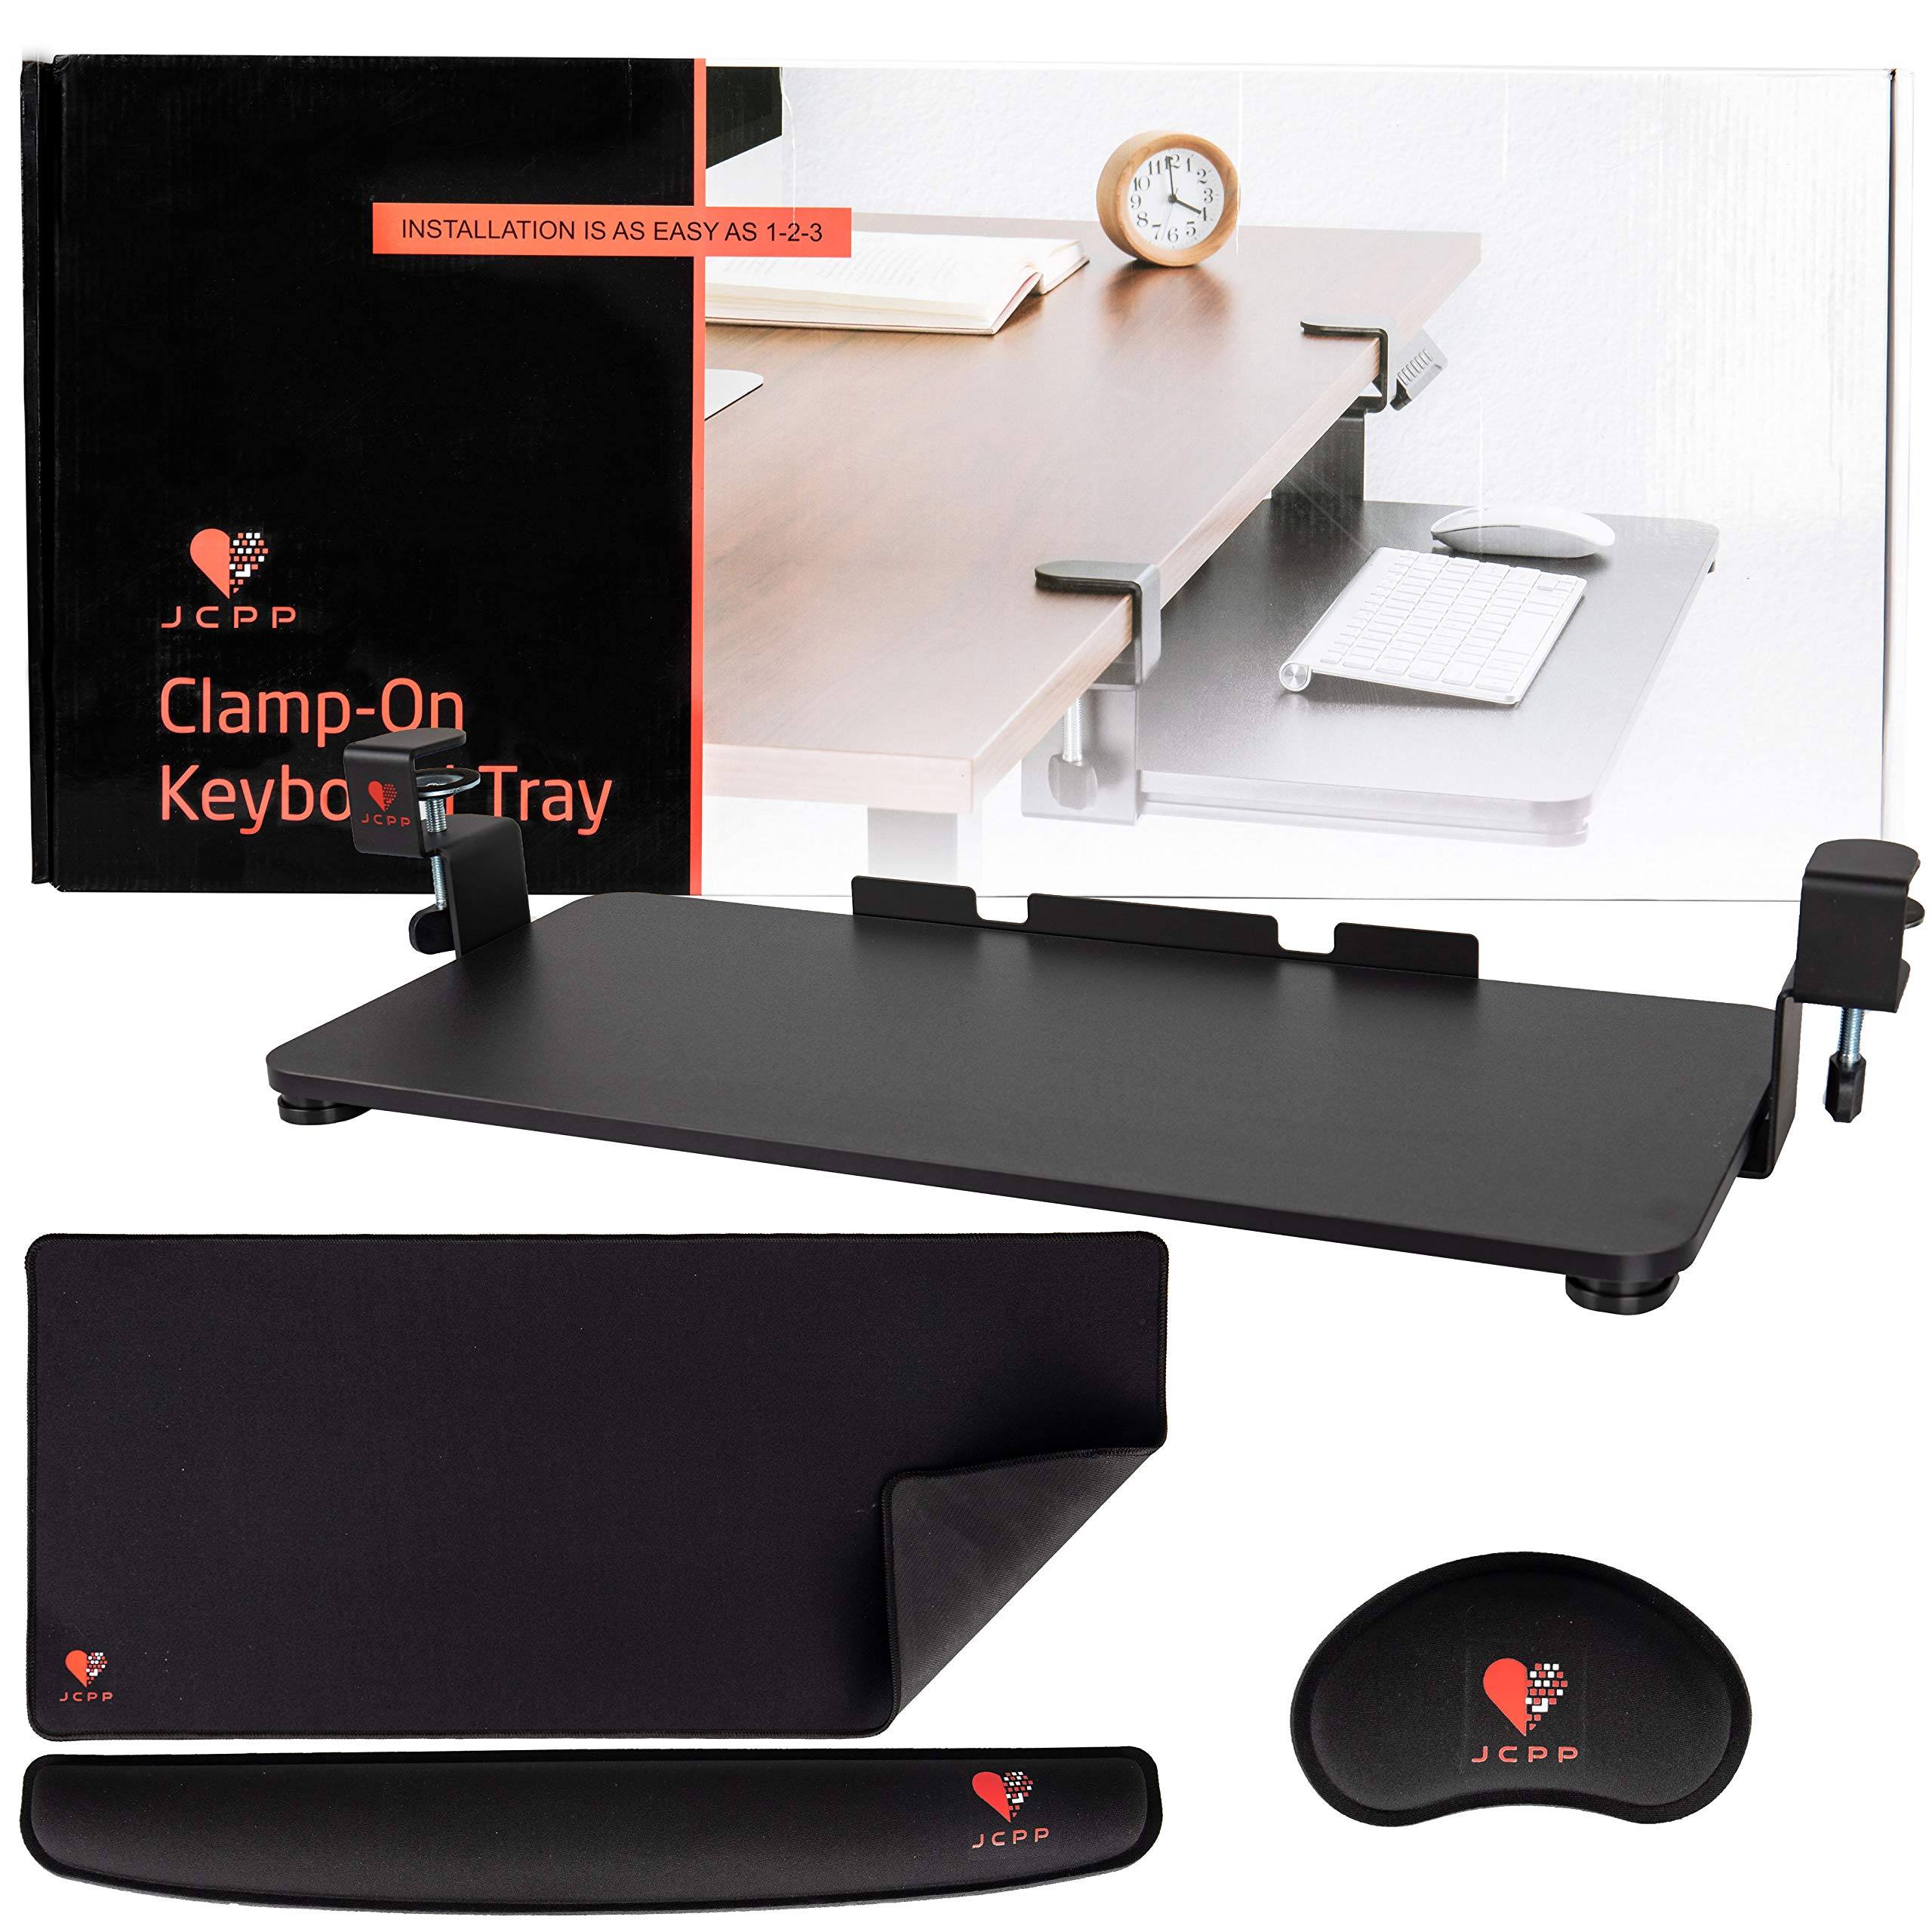 JCPP Easy(Extra Large)Clamp on Keyboard Tray/slider mount Drawer-No screws Needed!-Computer under shelf Table Desktop Extender for Homes and Offices-Includes Mouse pad,Keyboard wrist Pad, Mouse Rest by JCPP